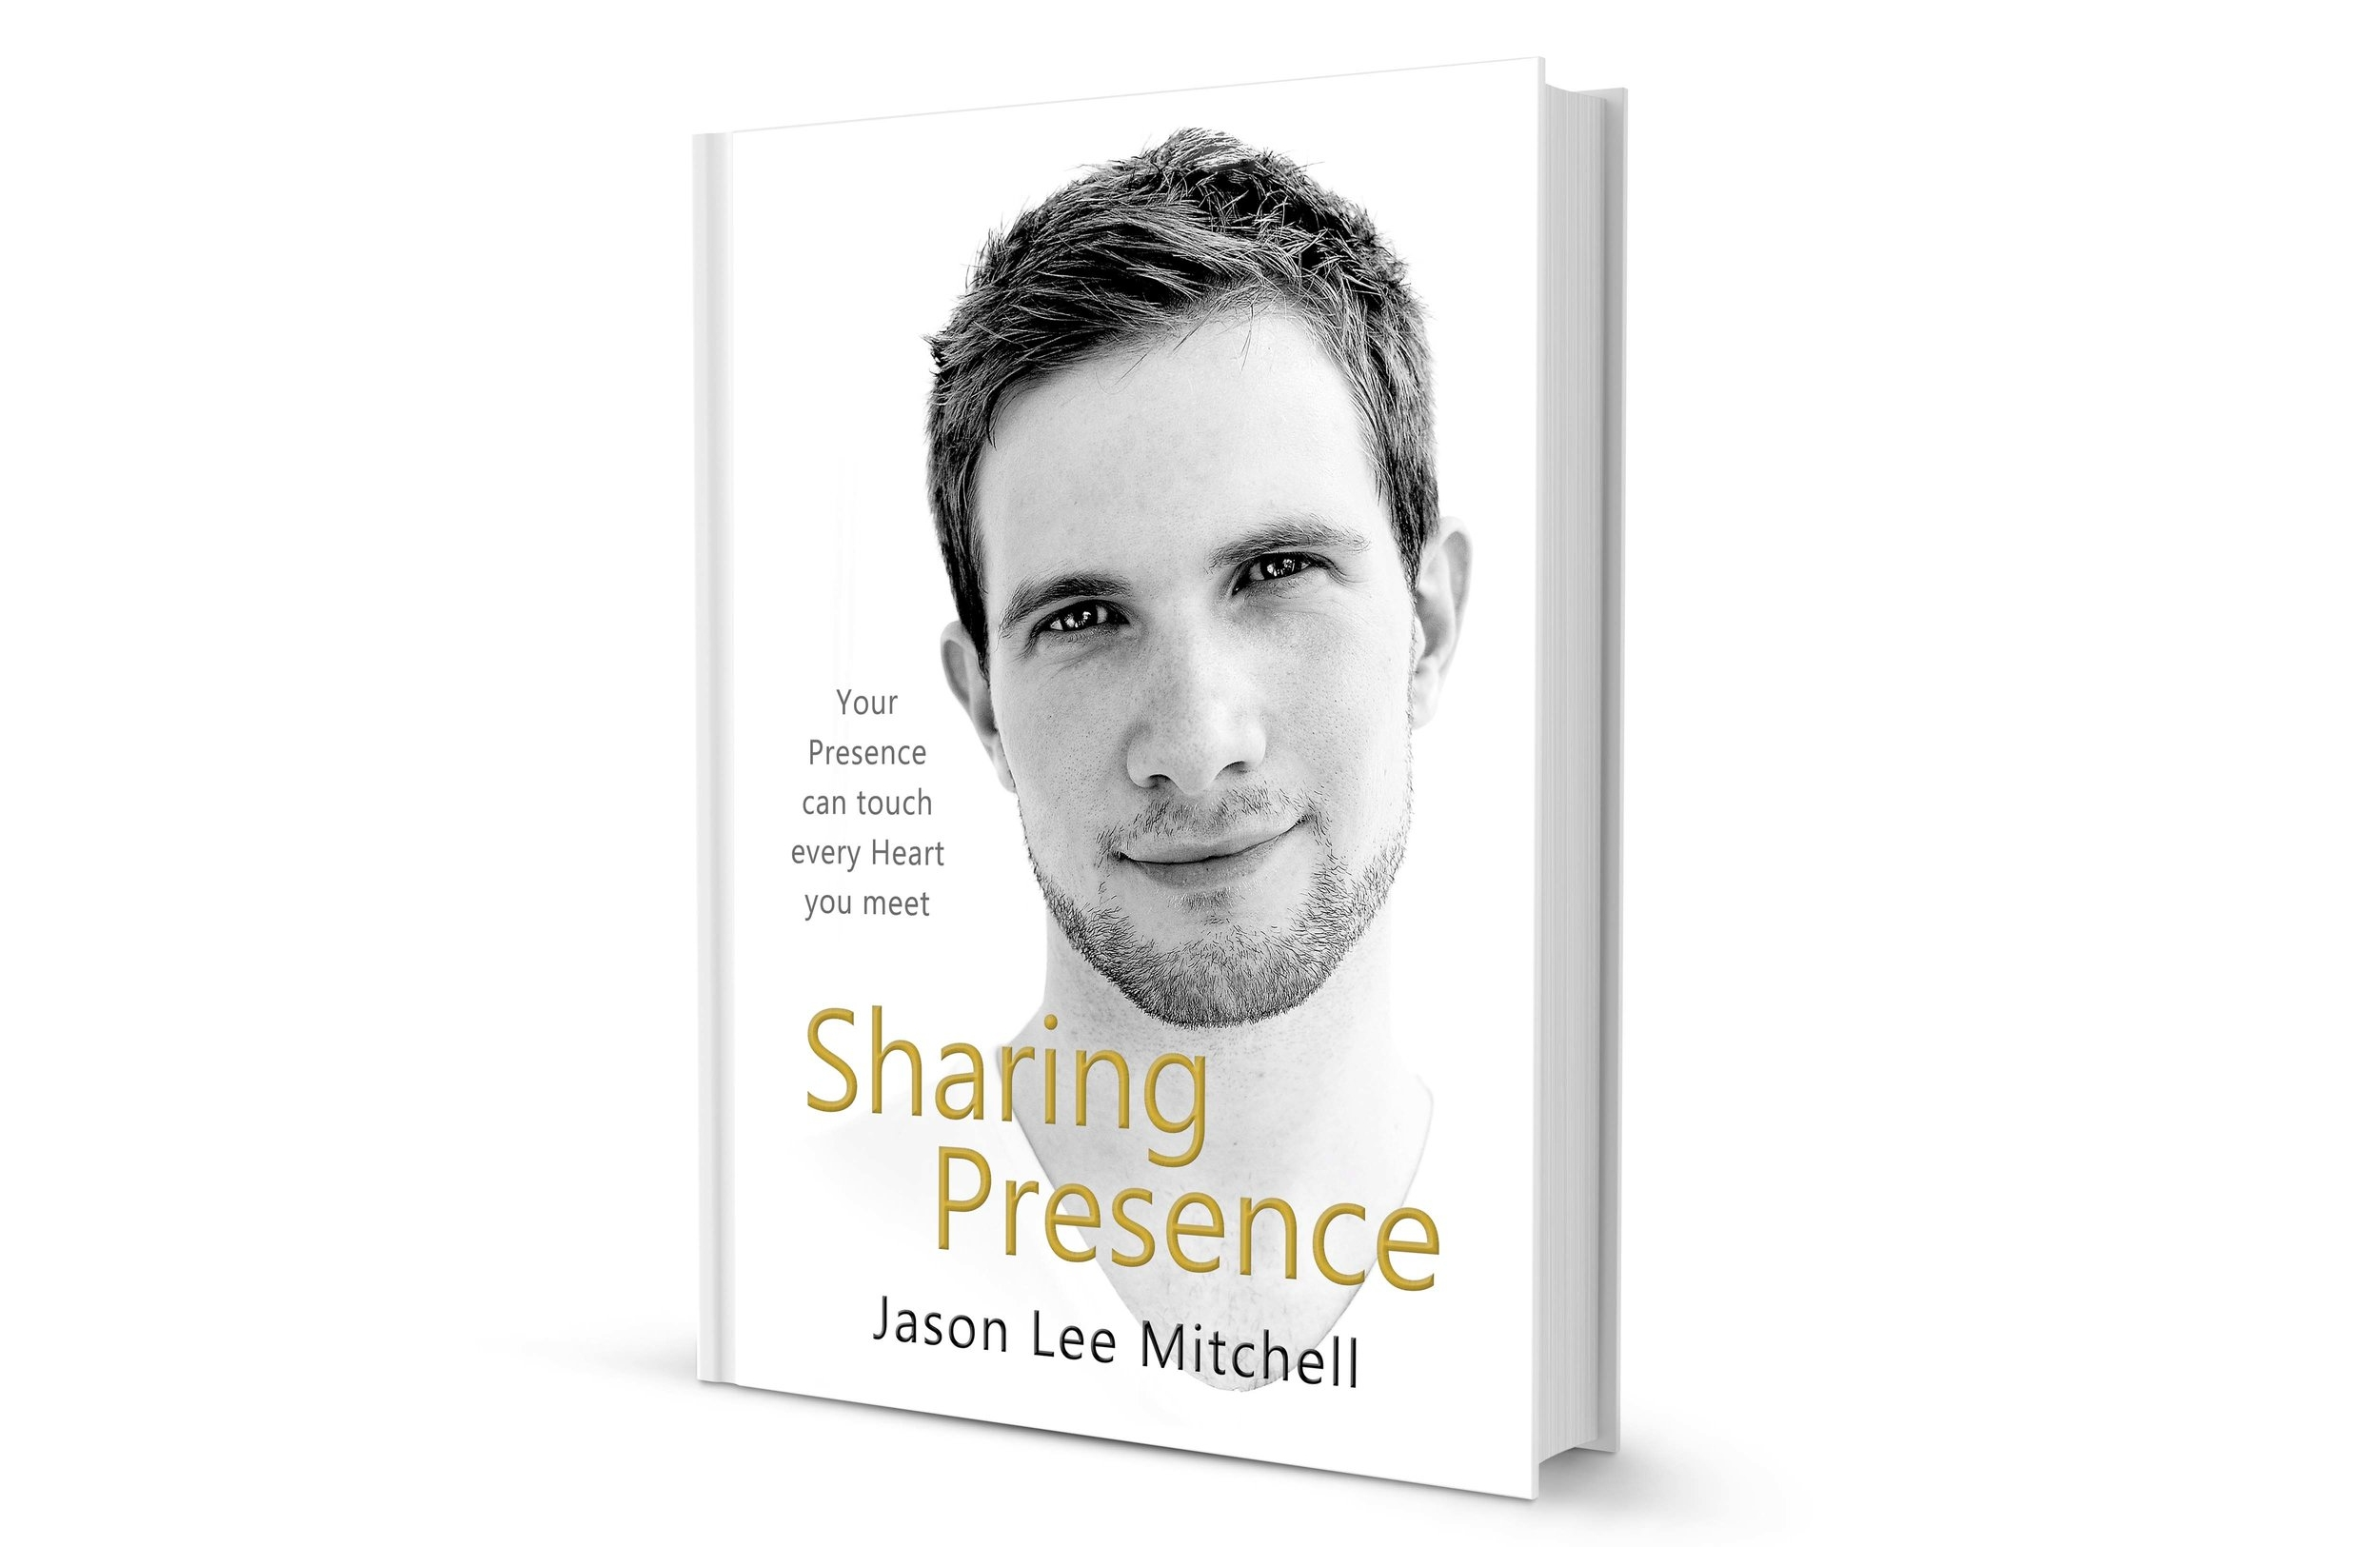 The Book - Jason's Book on Sharing Presence will be coming out Autumn 2018